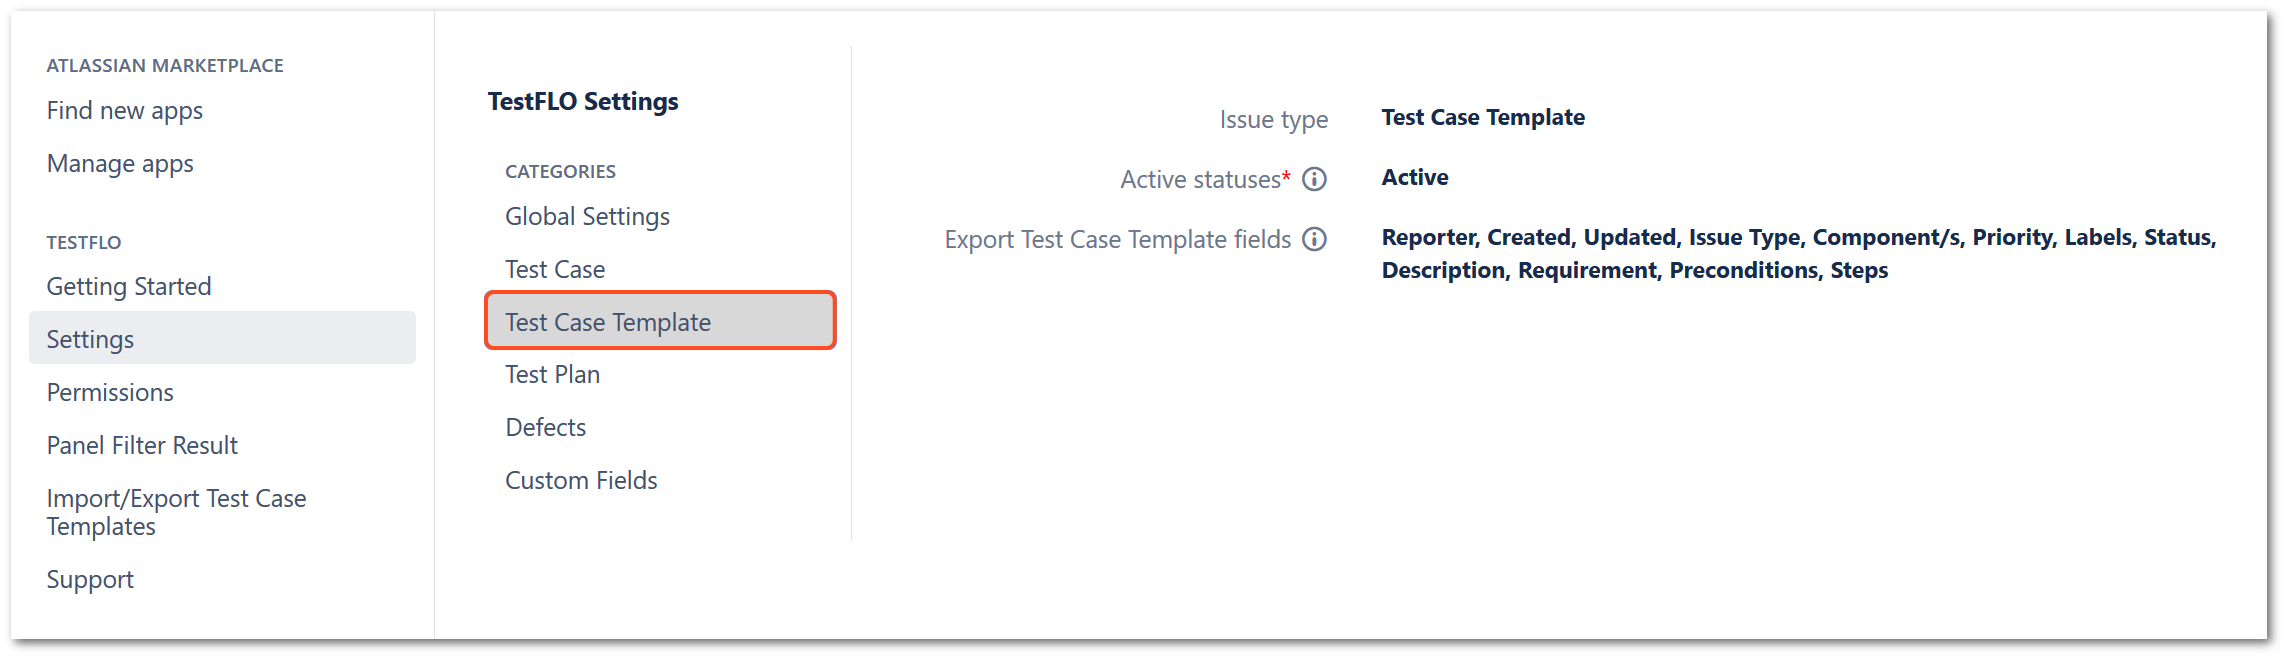 Test case template section in TestFLO settings